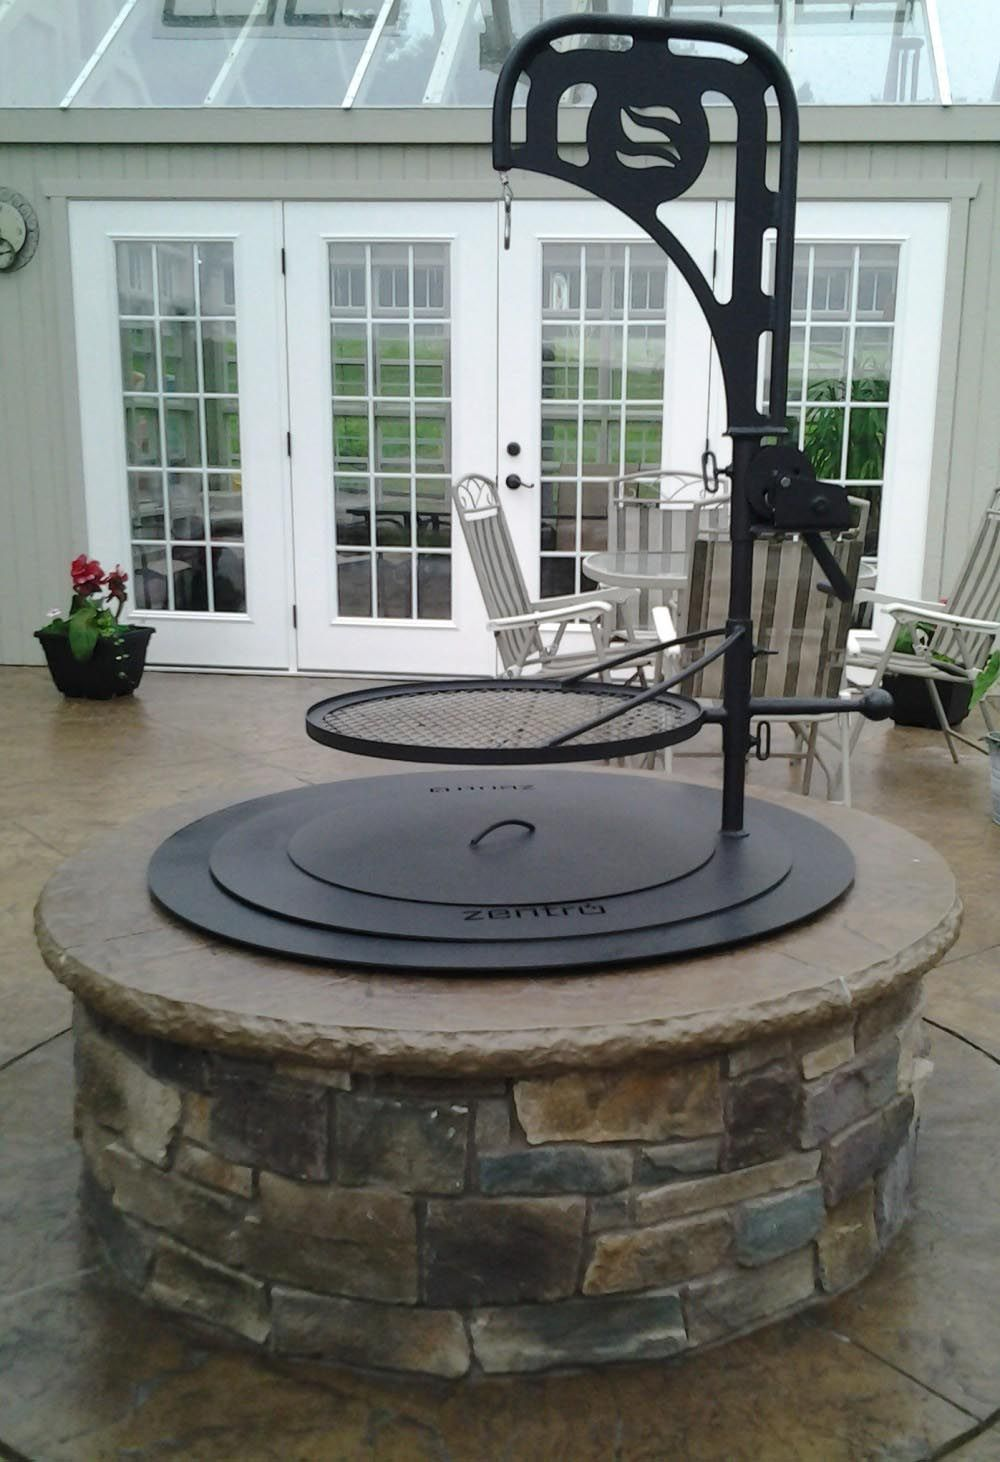 Photo of Fire pit grill accessories